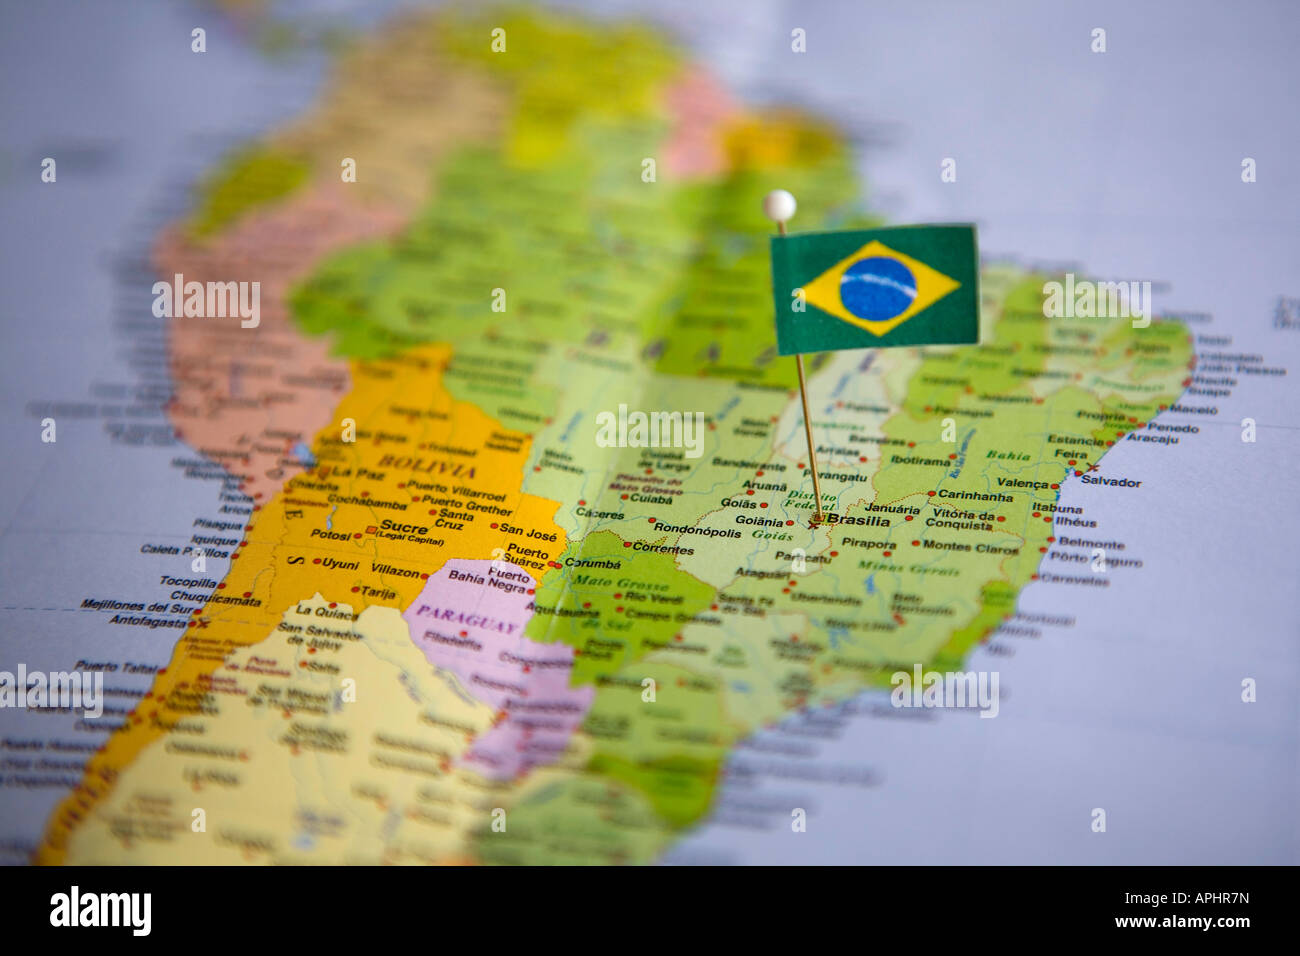 Flag Pin Placed on World Map in the Capital of Brazil Brasilia